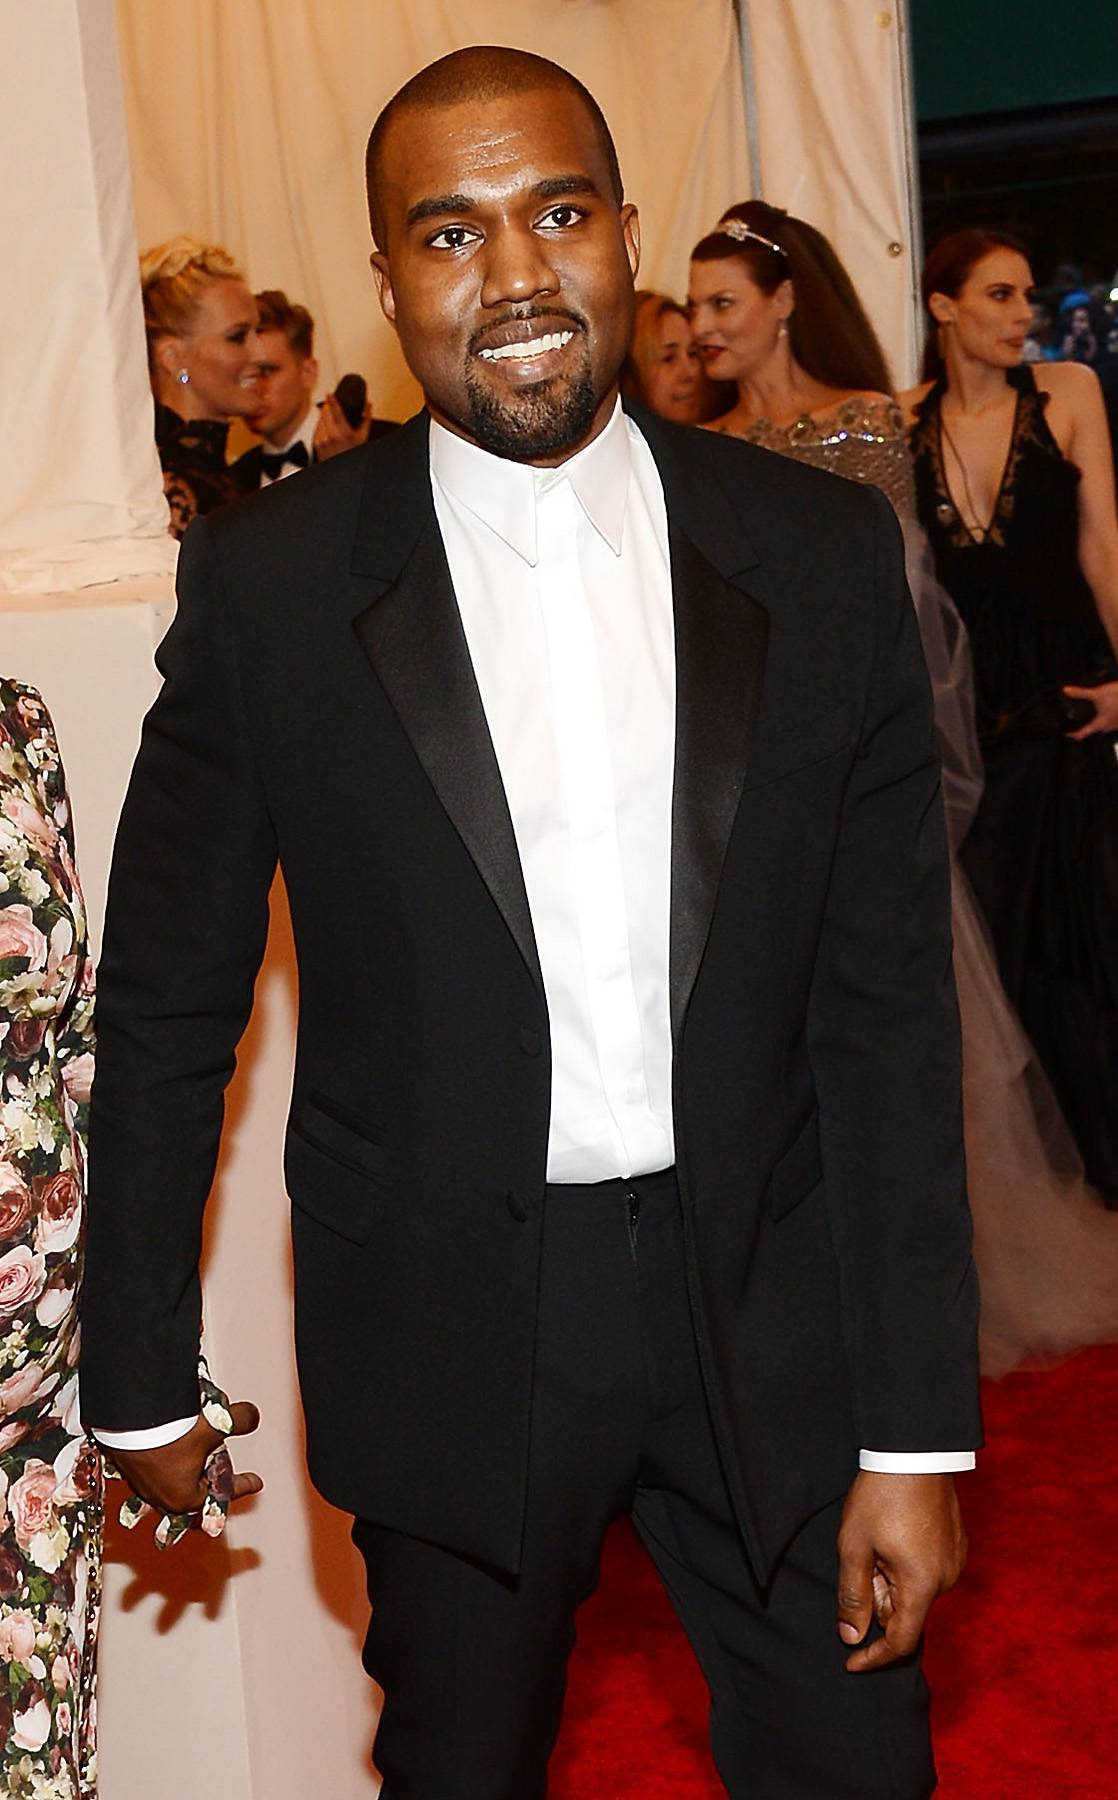 """Kanye West, 'Roses' - It's no secret that Yeezy adores the women in his life. The passionate track """"Roses"""" provided yet another example of that love as he pays homage to his grandma, who at the time was hospitalized.  Kanye: """"When they said that she made it / You see they eyes gleam / I think we at an all time high...Cause with my family we know where home is /And so instead of sending flowers, we're the roses.""""  (Photo: Larry Busacca/Getty Images)"""